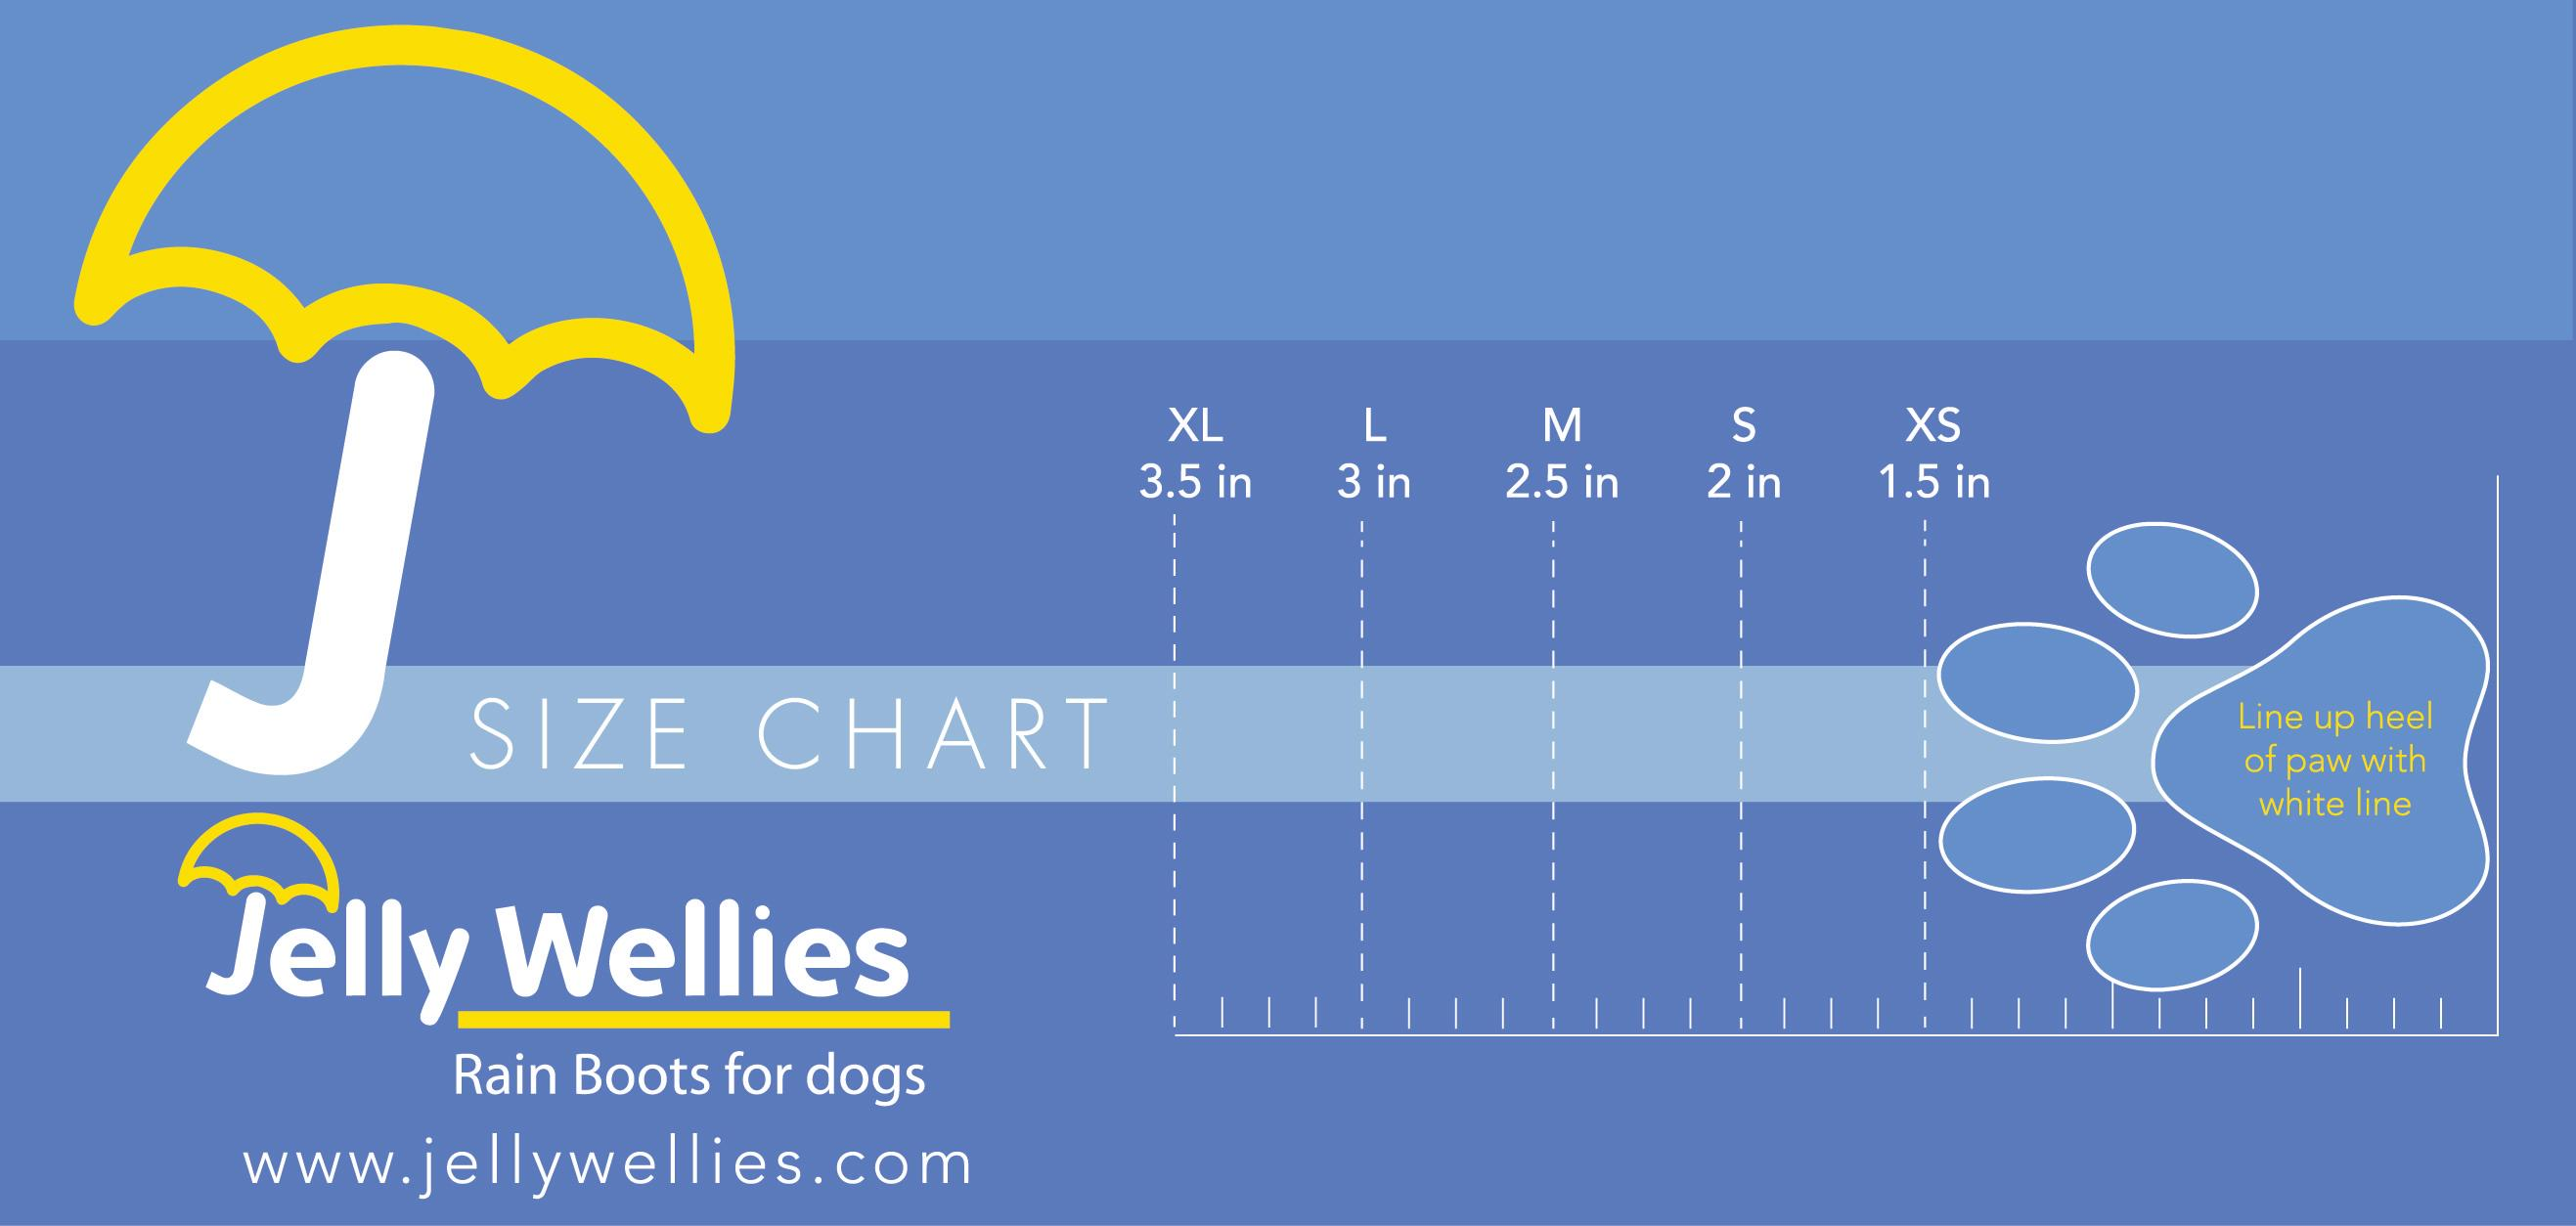 jellywellies_size_chart